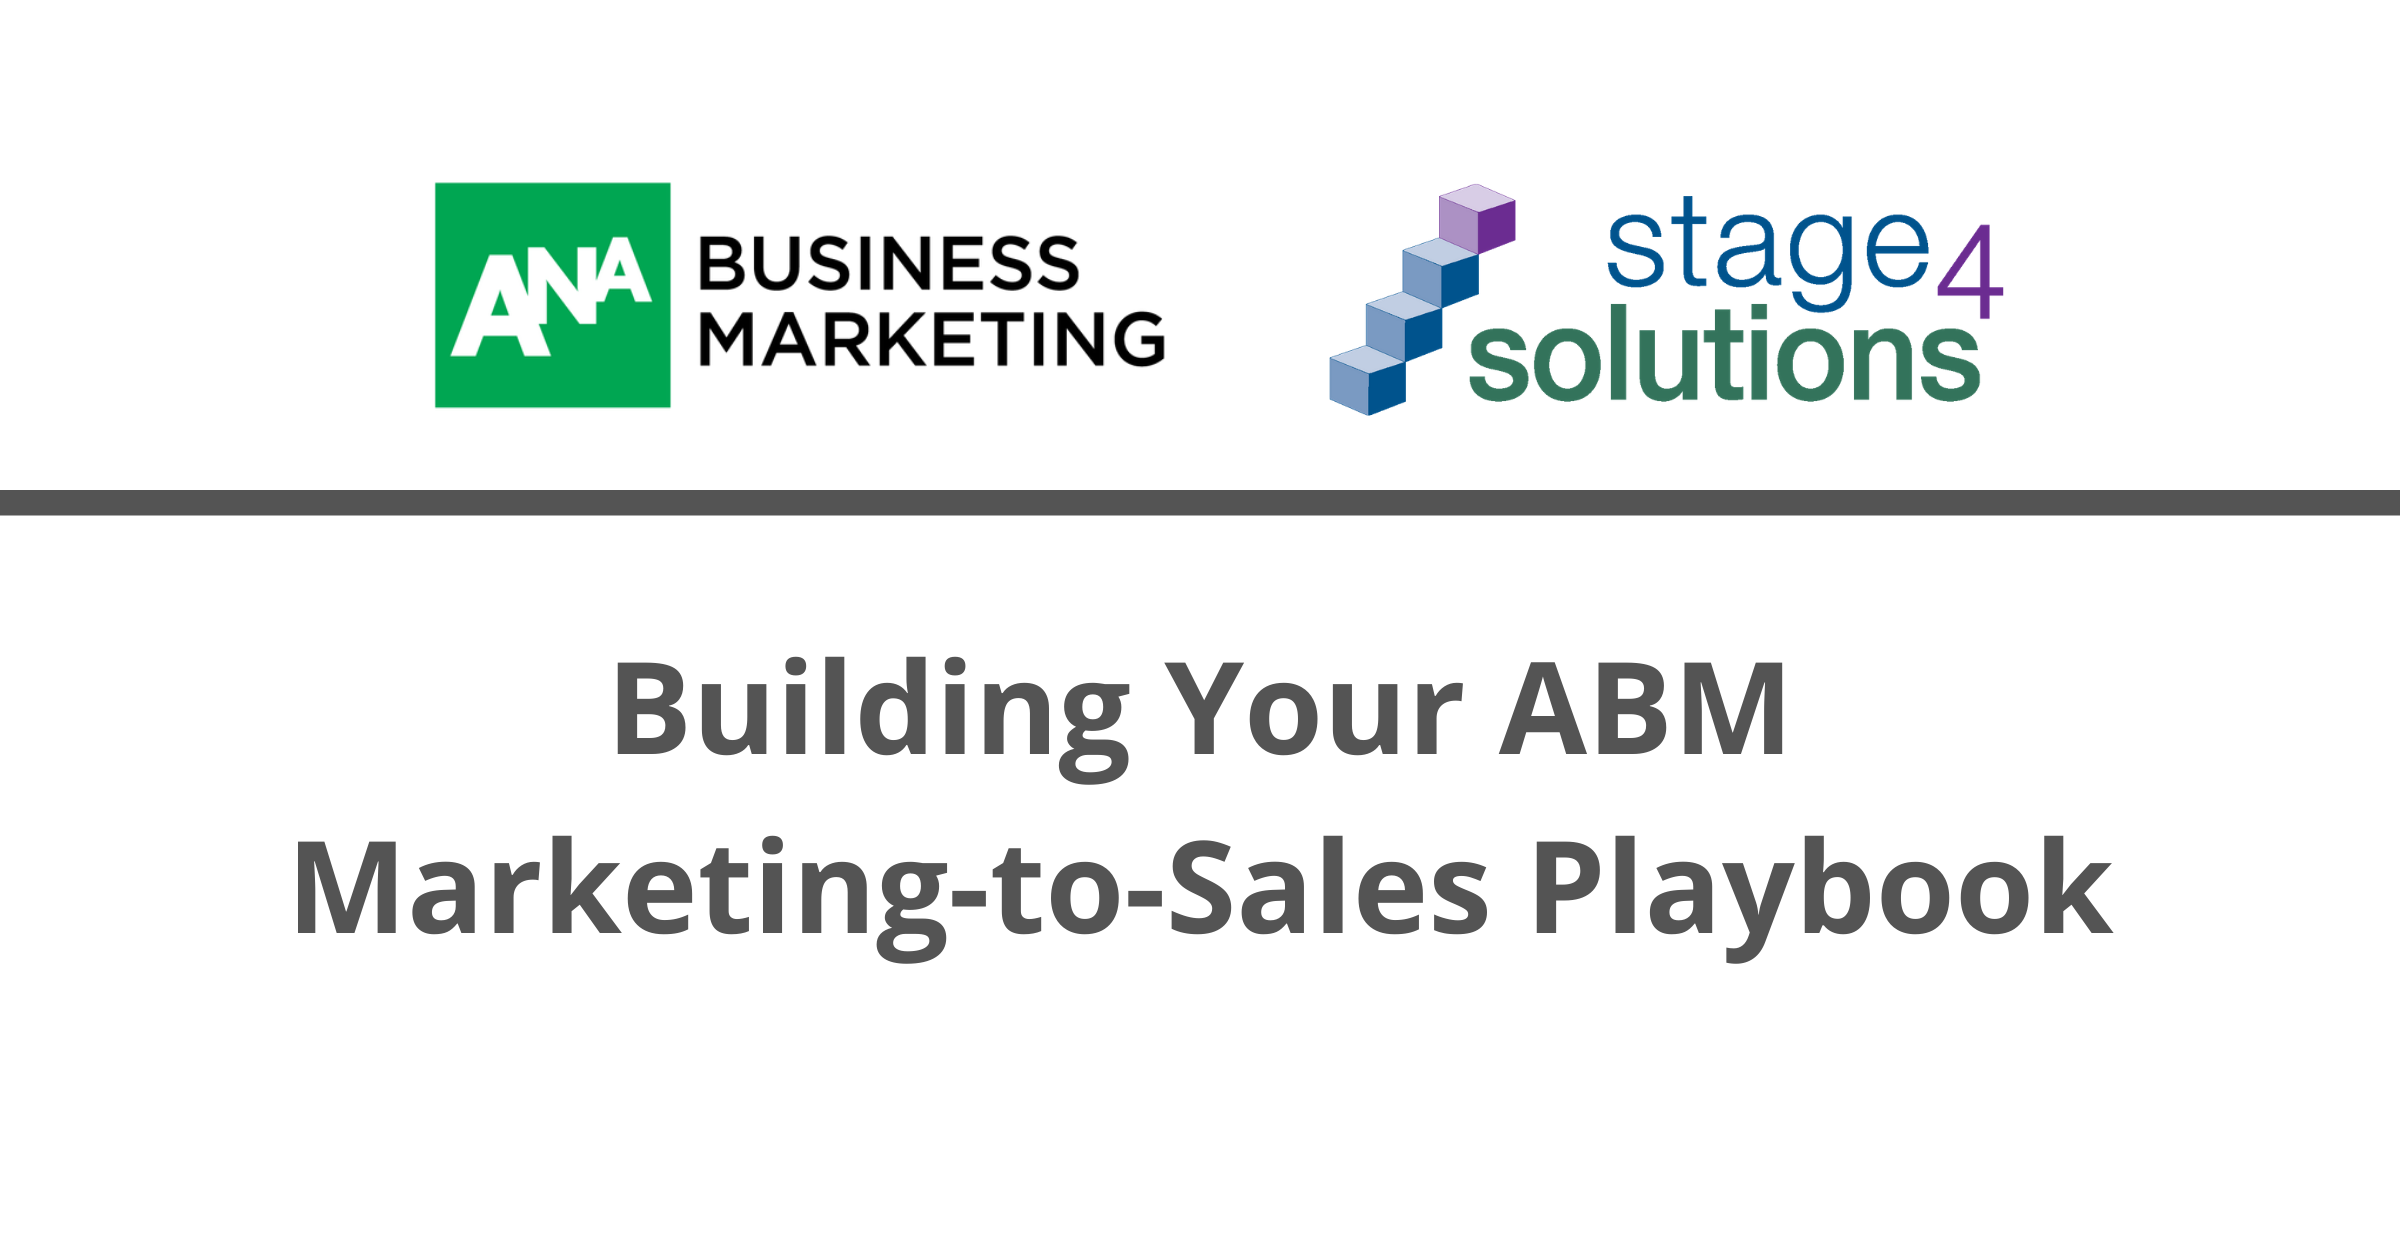 Building Your ABM Marketing-to-Sales Playbook